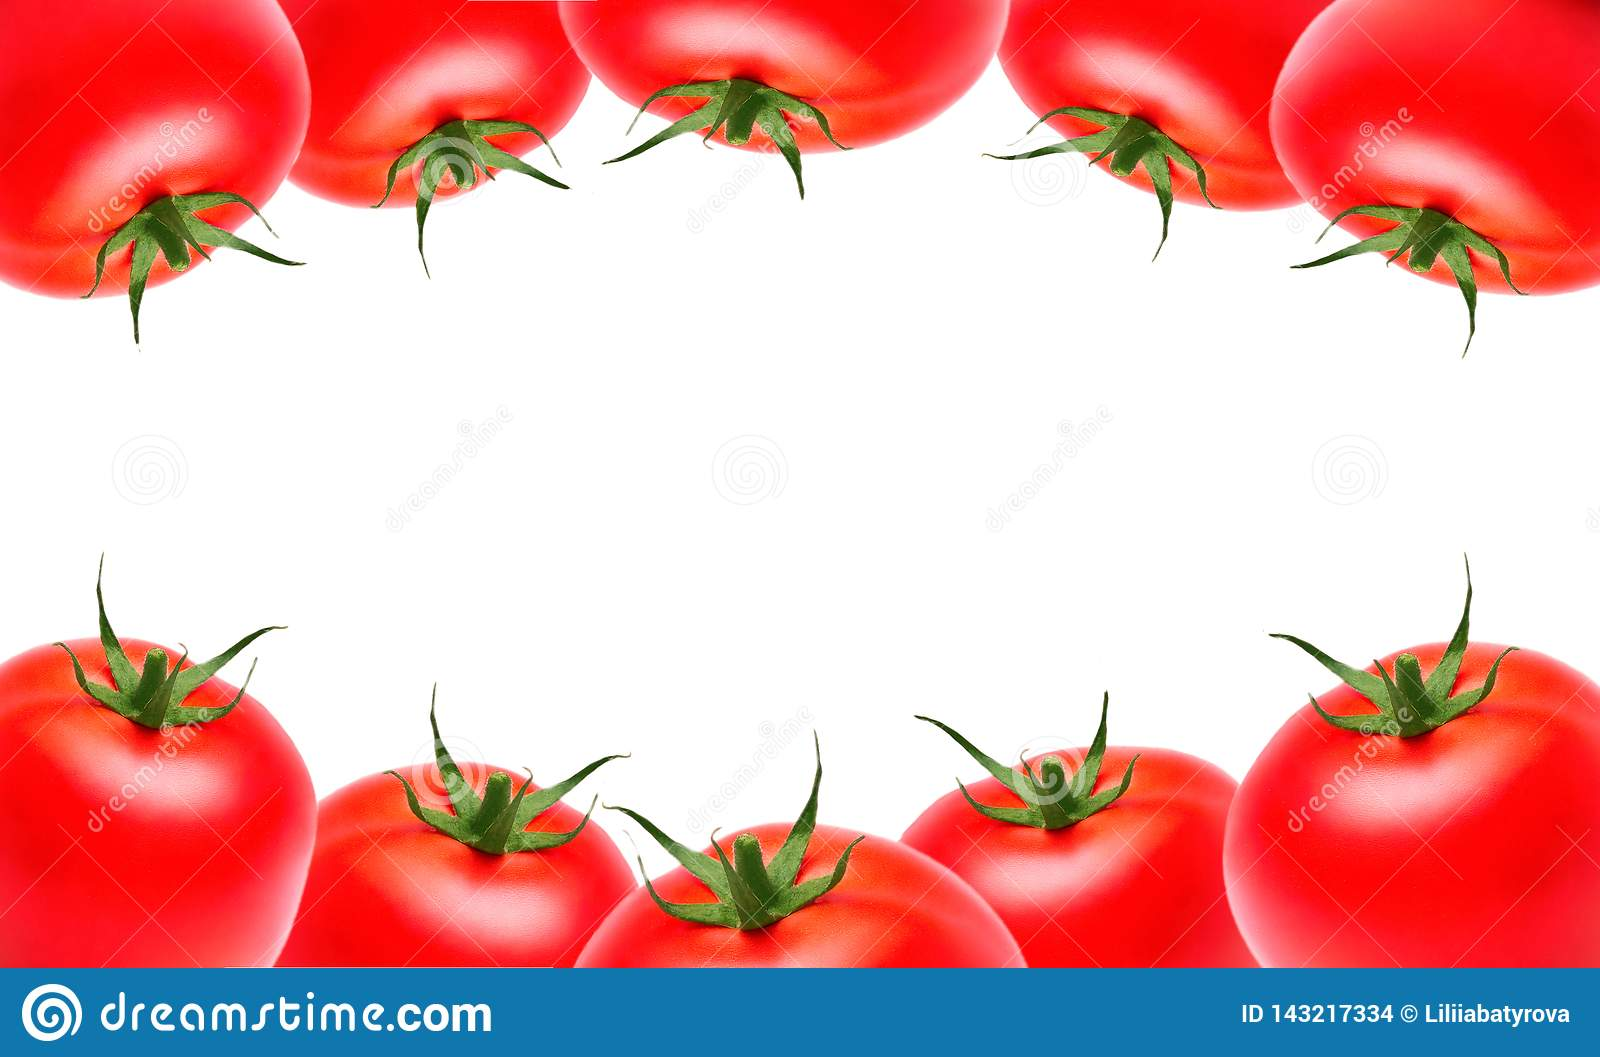 Red ripe tomatoes on the top and bottom on a white isolated background, copyspace. Vegetables, healthy eating, market